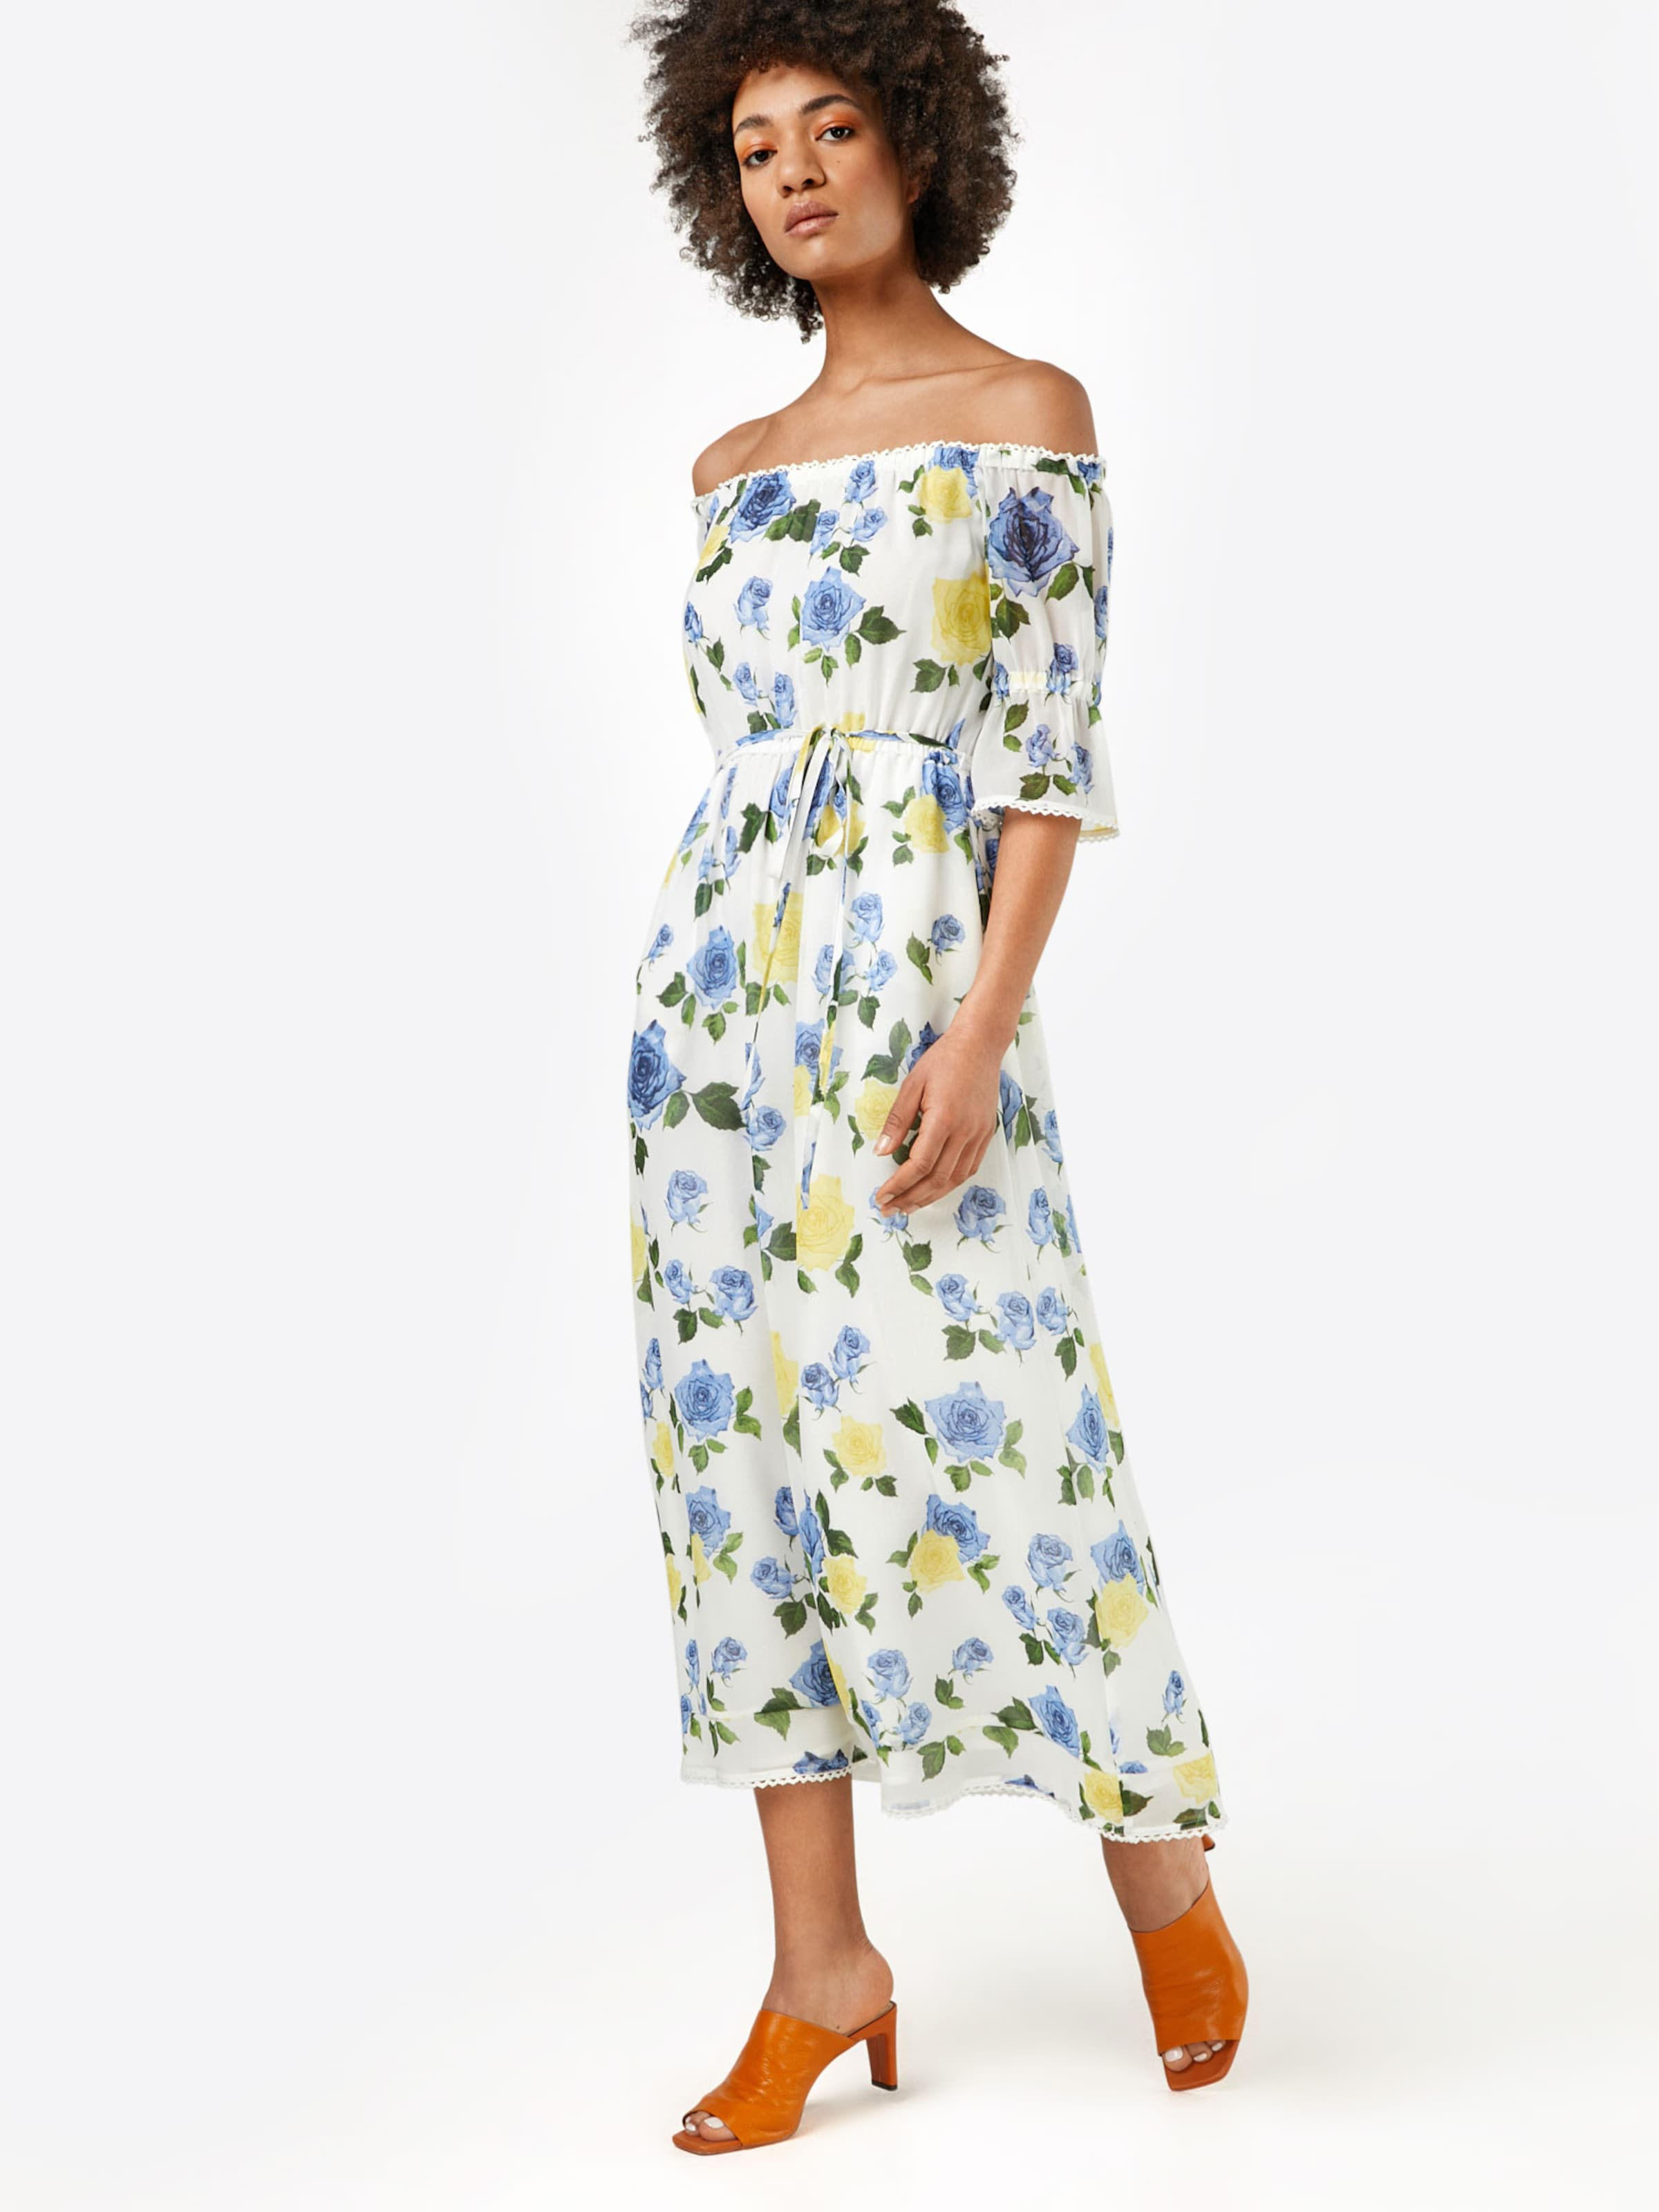 Pes Robe Dress' Blanc Roses The 'wild On Muslin Maxi Sport En D'été Kooples NOknPX80w